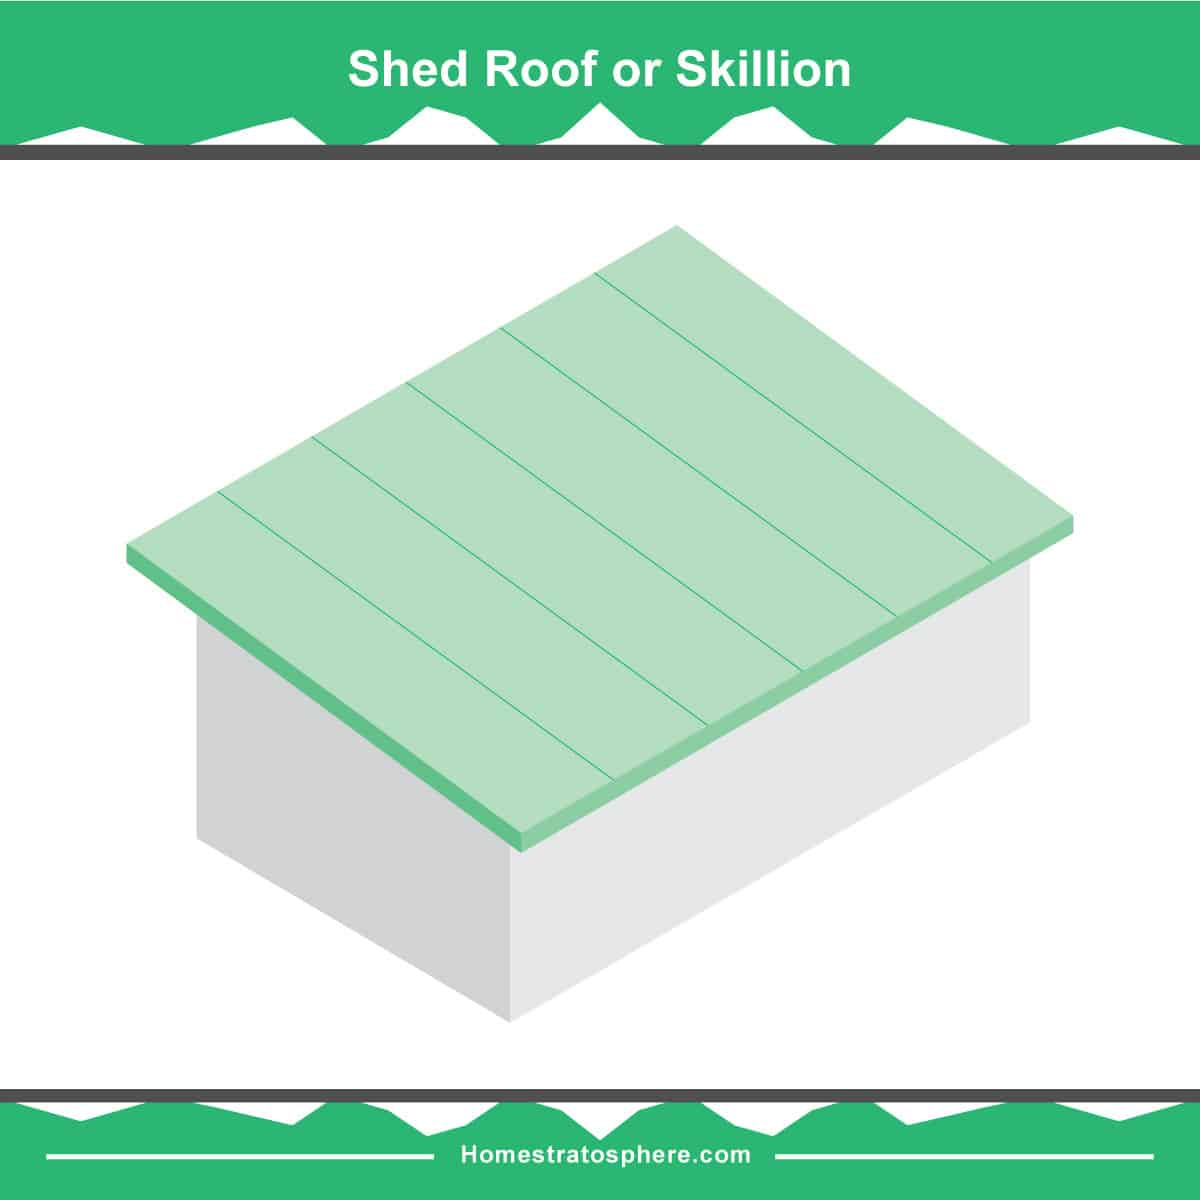 Shed roof or skillion diagram